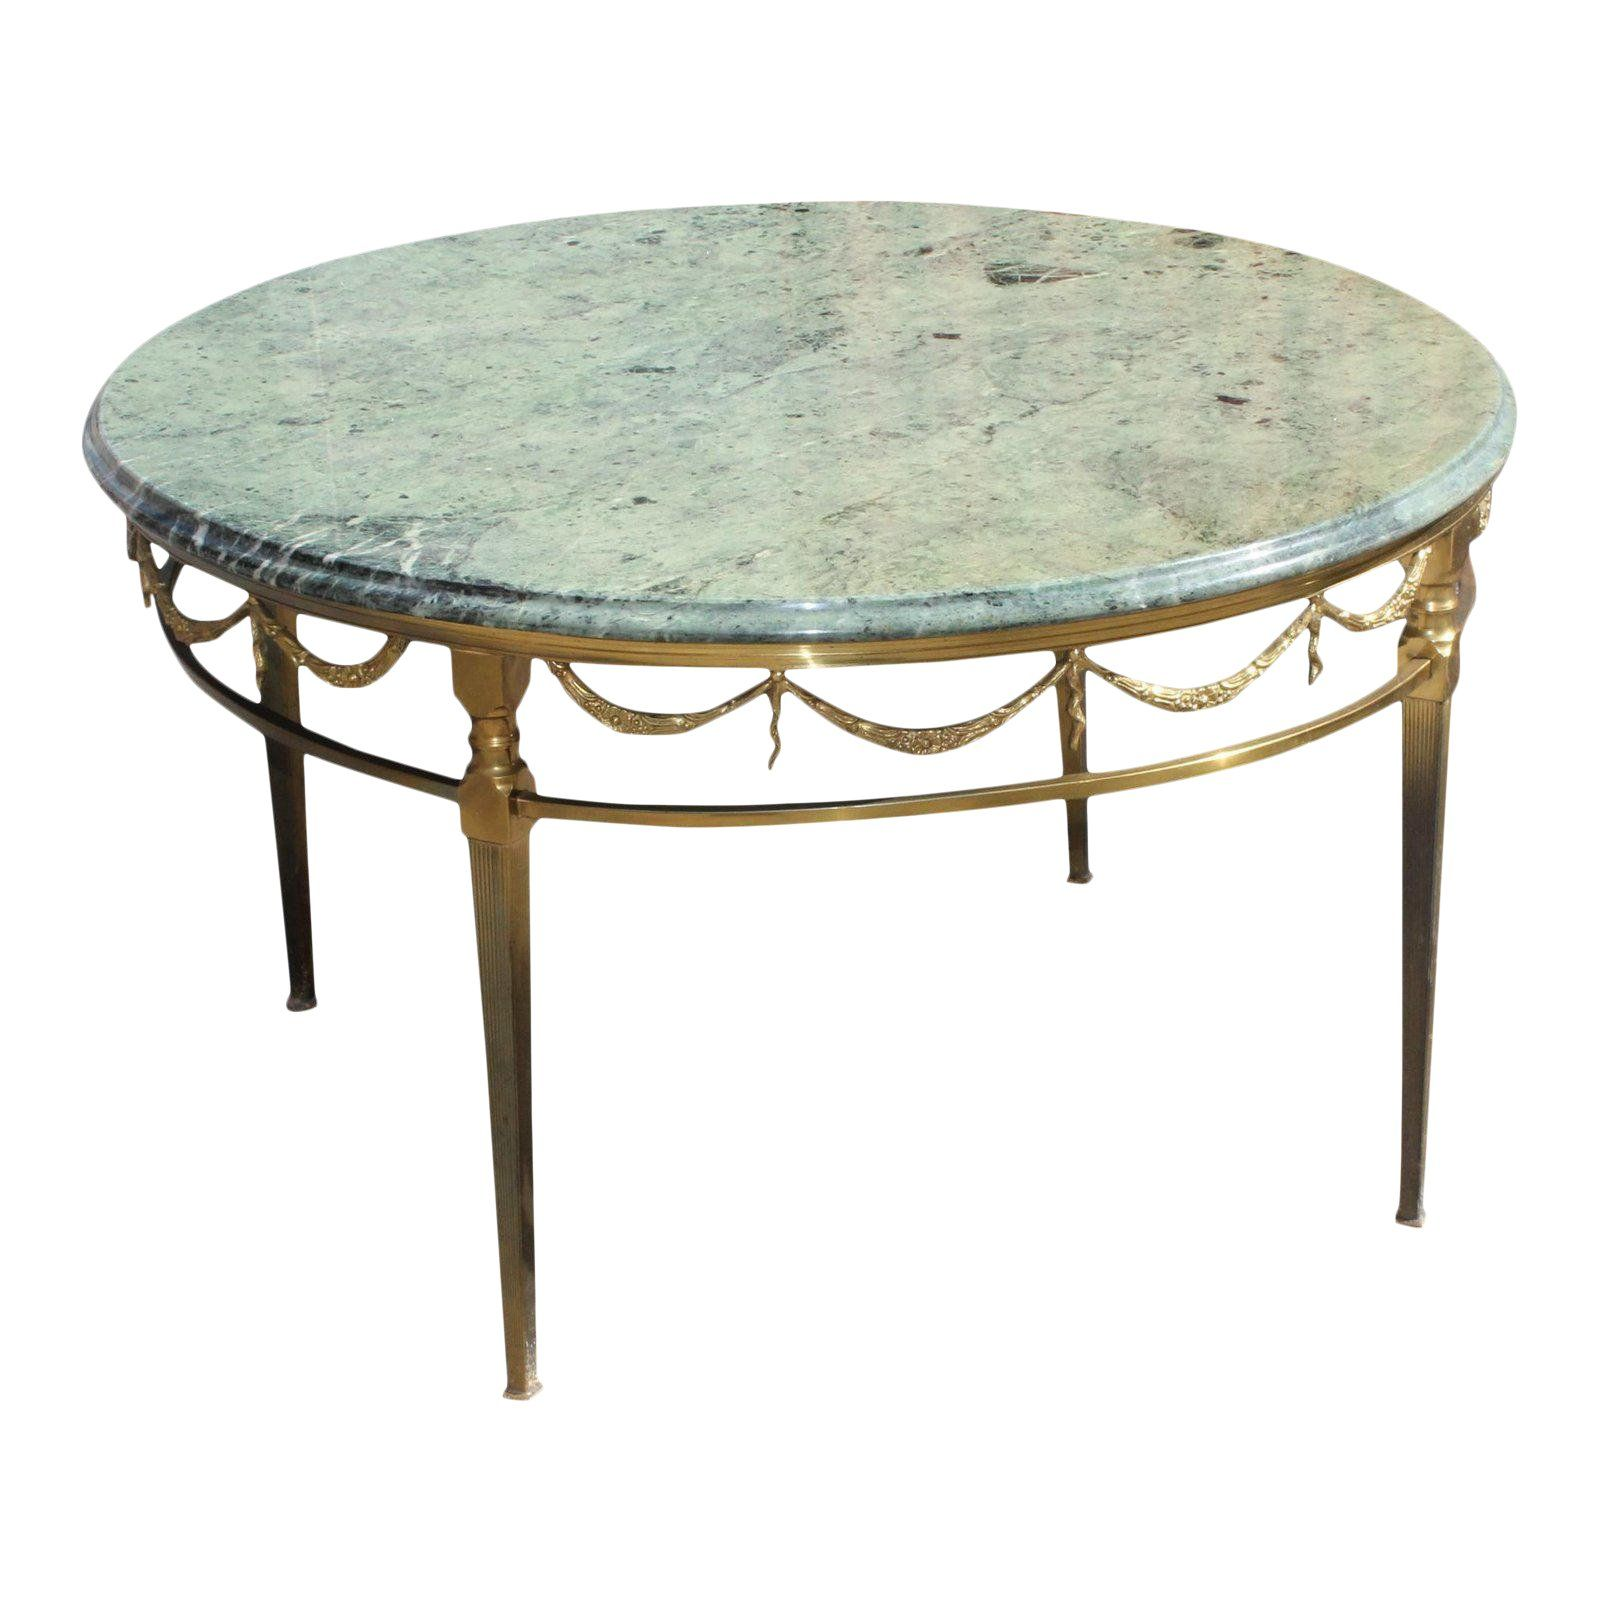 1940s Art Deco Maison Jansen Bronze With Round Marble Top Coffee Table For Sale Bronze Coffee Table Coffee Table Vintage Coffee Table